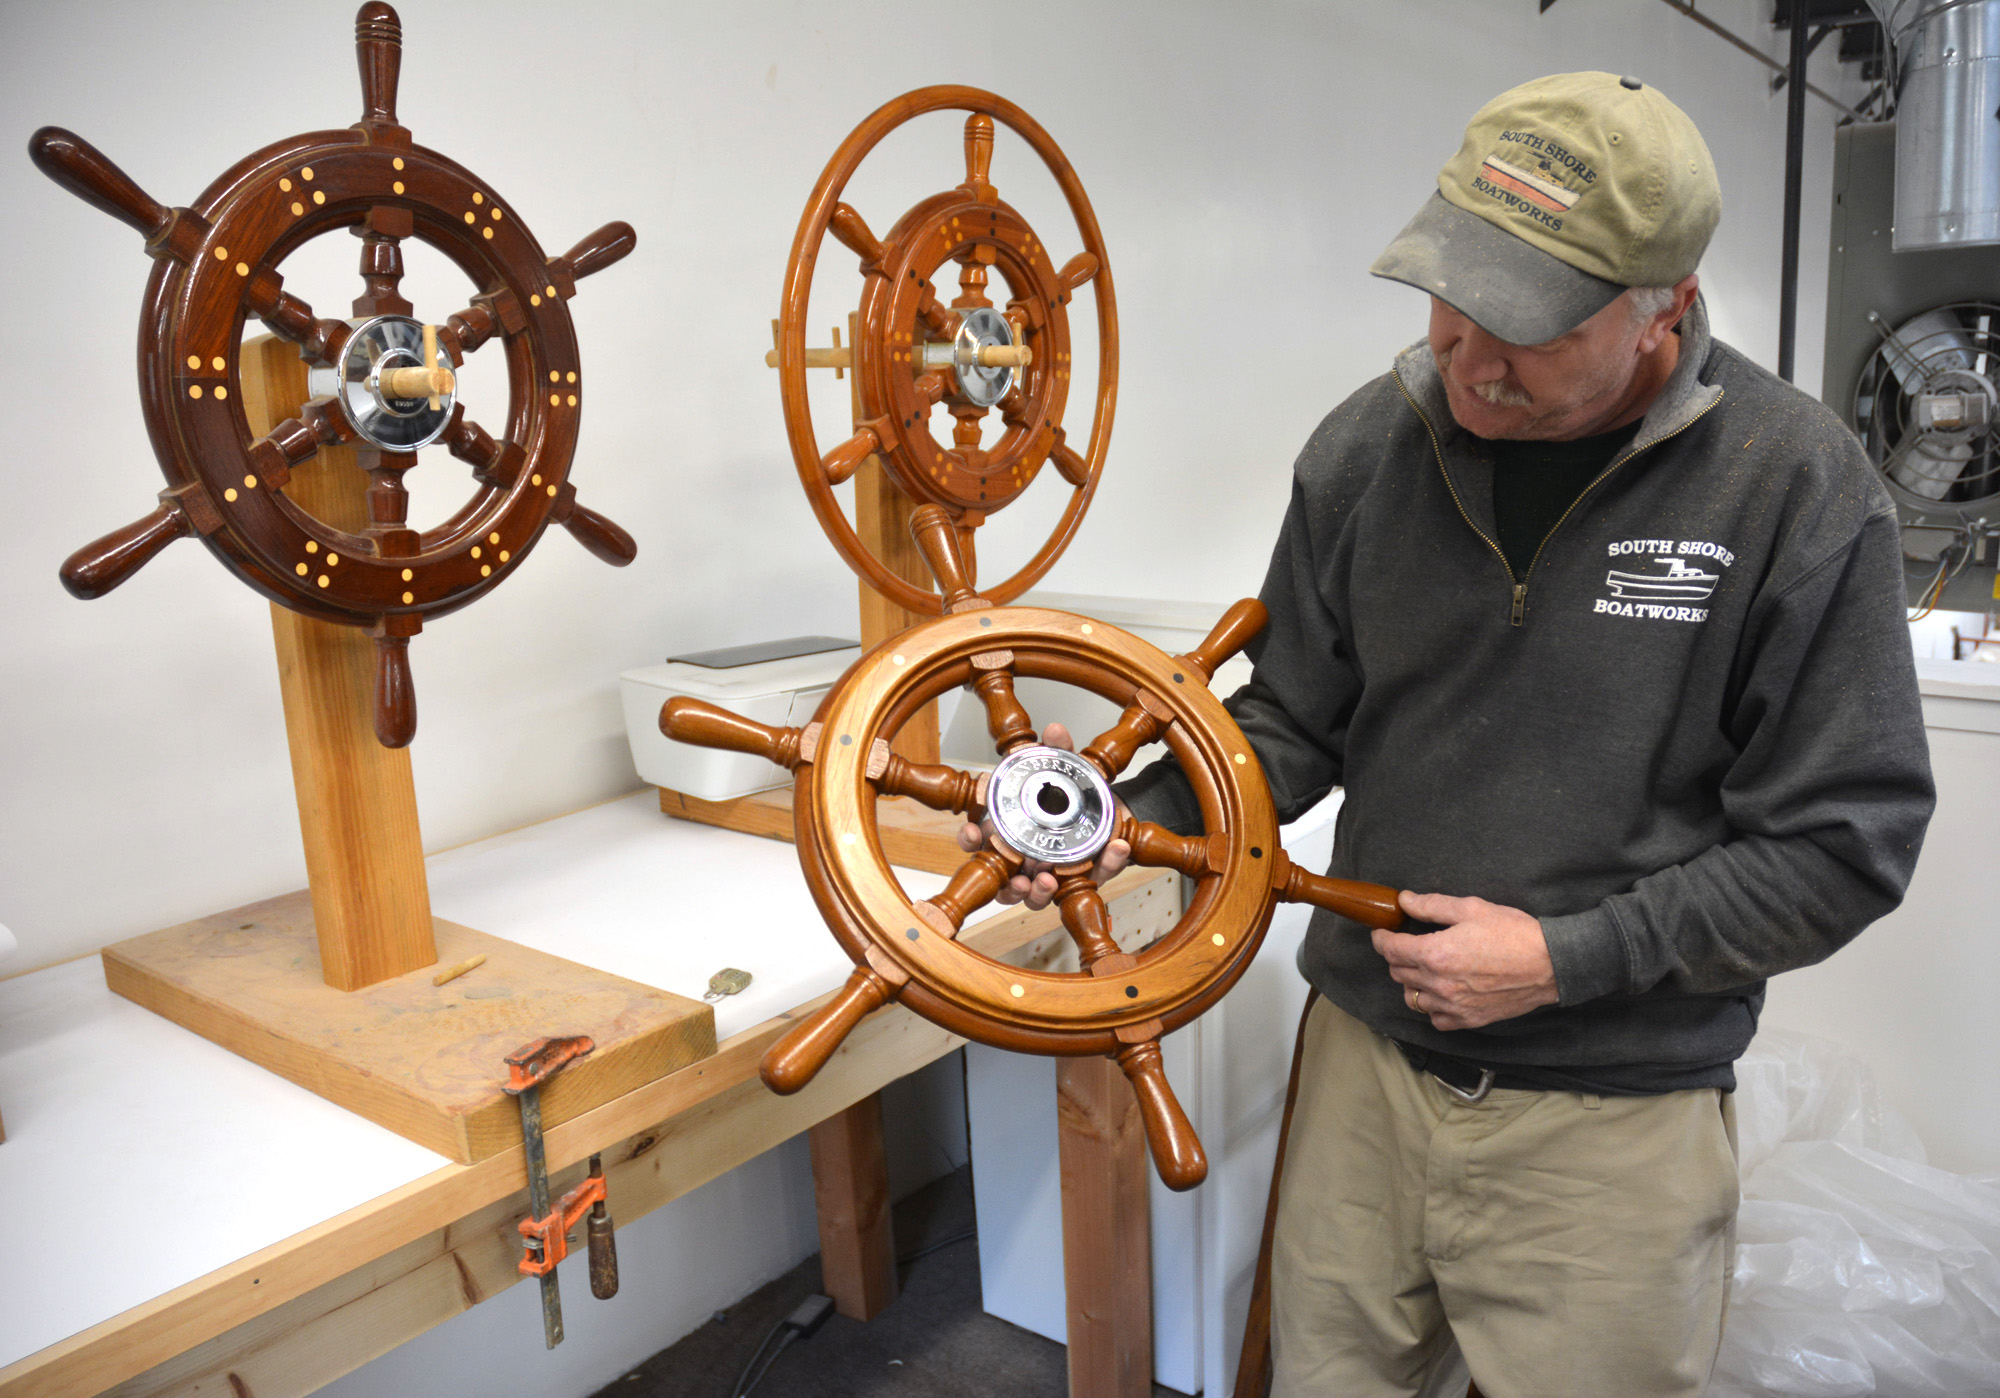 Bob Fuller holding one of his ship's wheels.